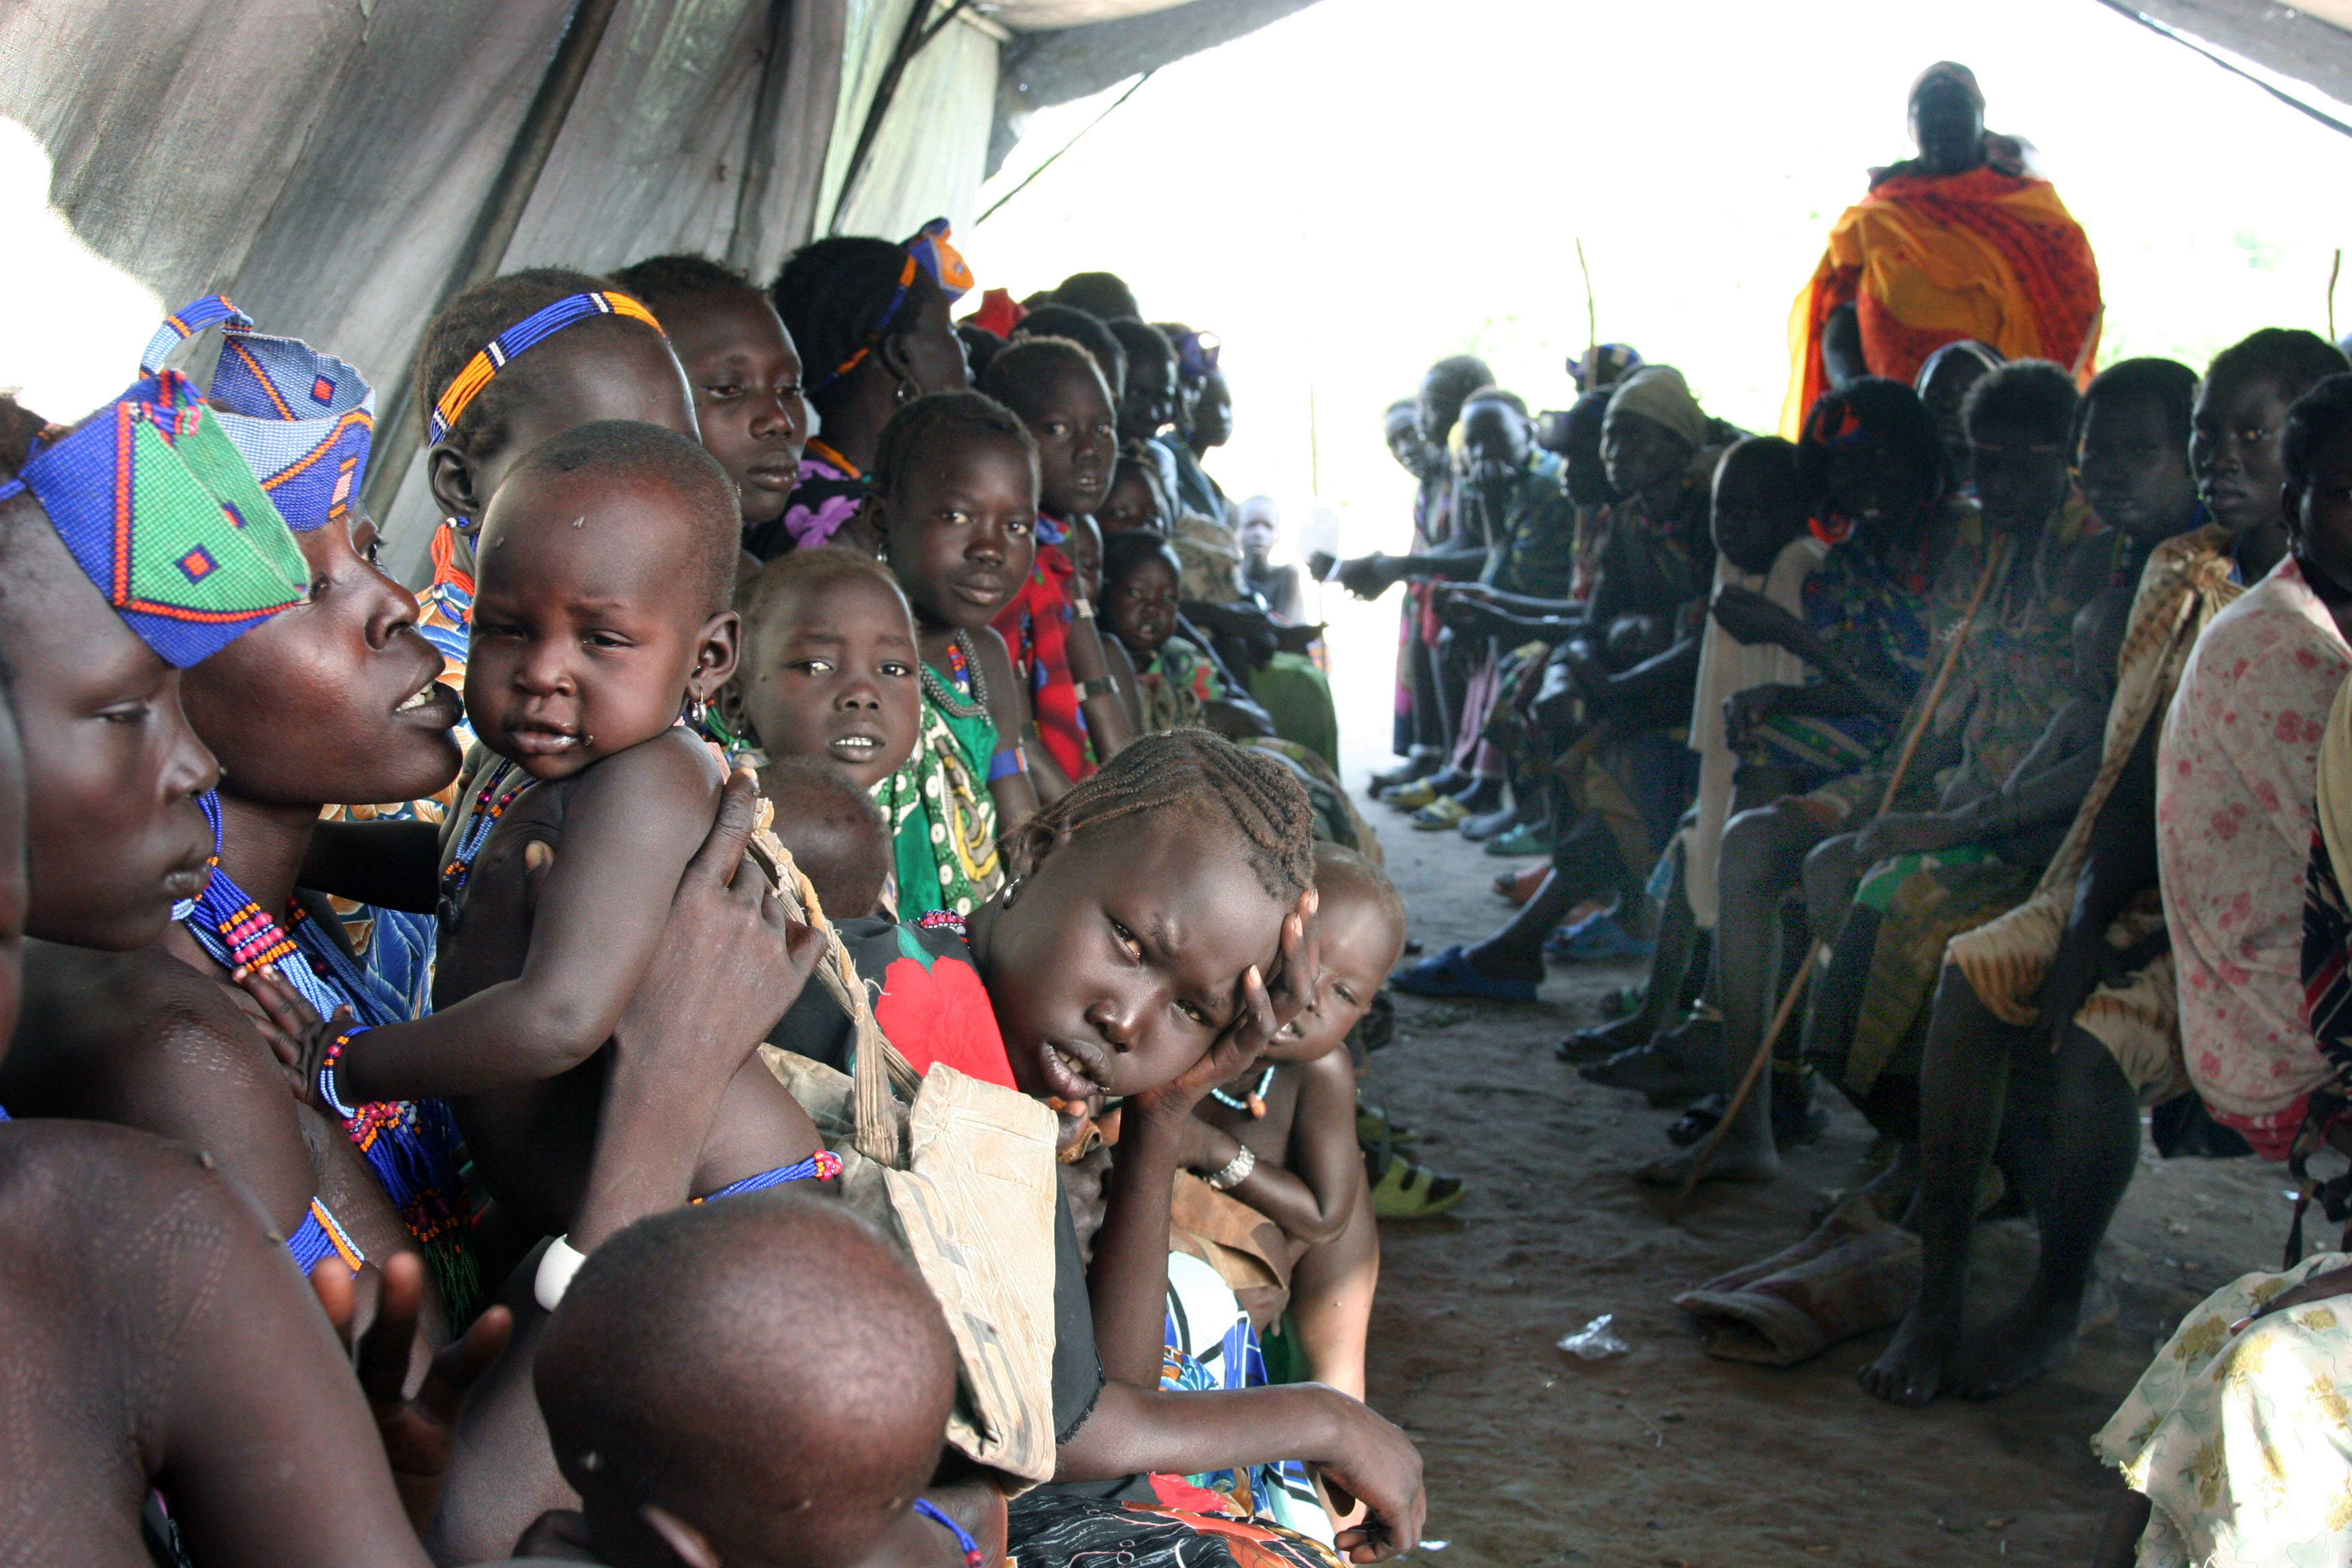 the horrific destiny of children in sudan South sudan has the largest number of child soldiers in africa most are still fighting, but efforts are being made to disarm and reintegrate them into society tomodho amid the family's maize crop at his family's home in pibor, south sudan photograph: phil hatcher-moore/unicef.